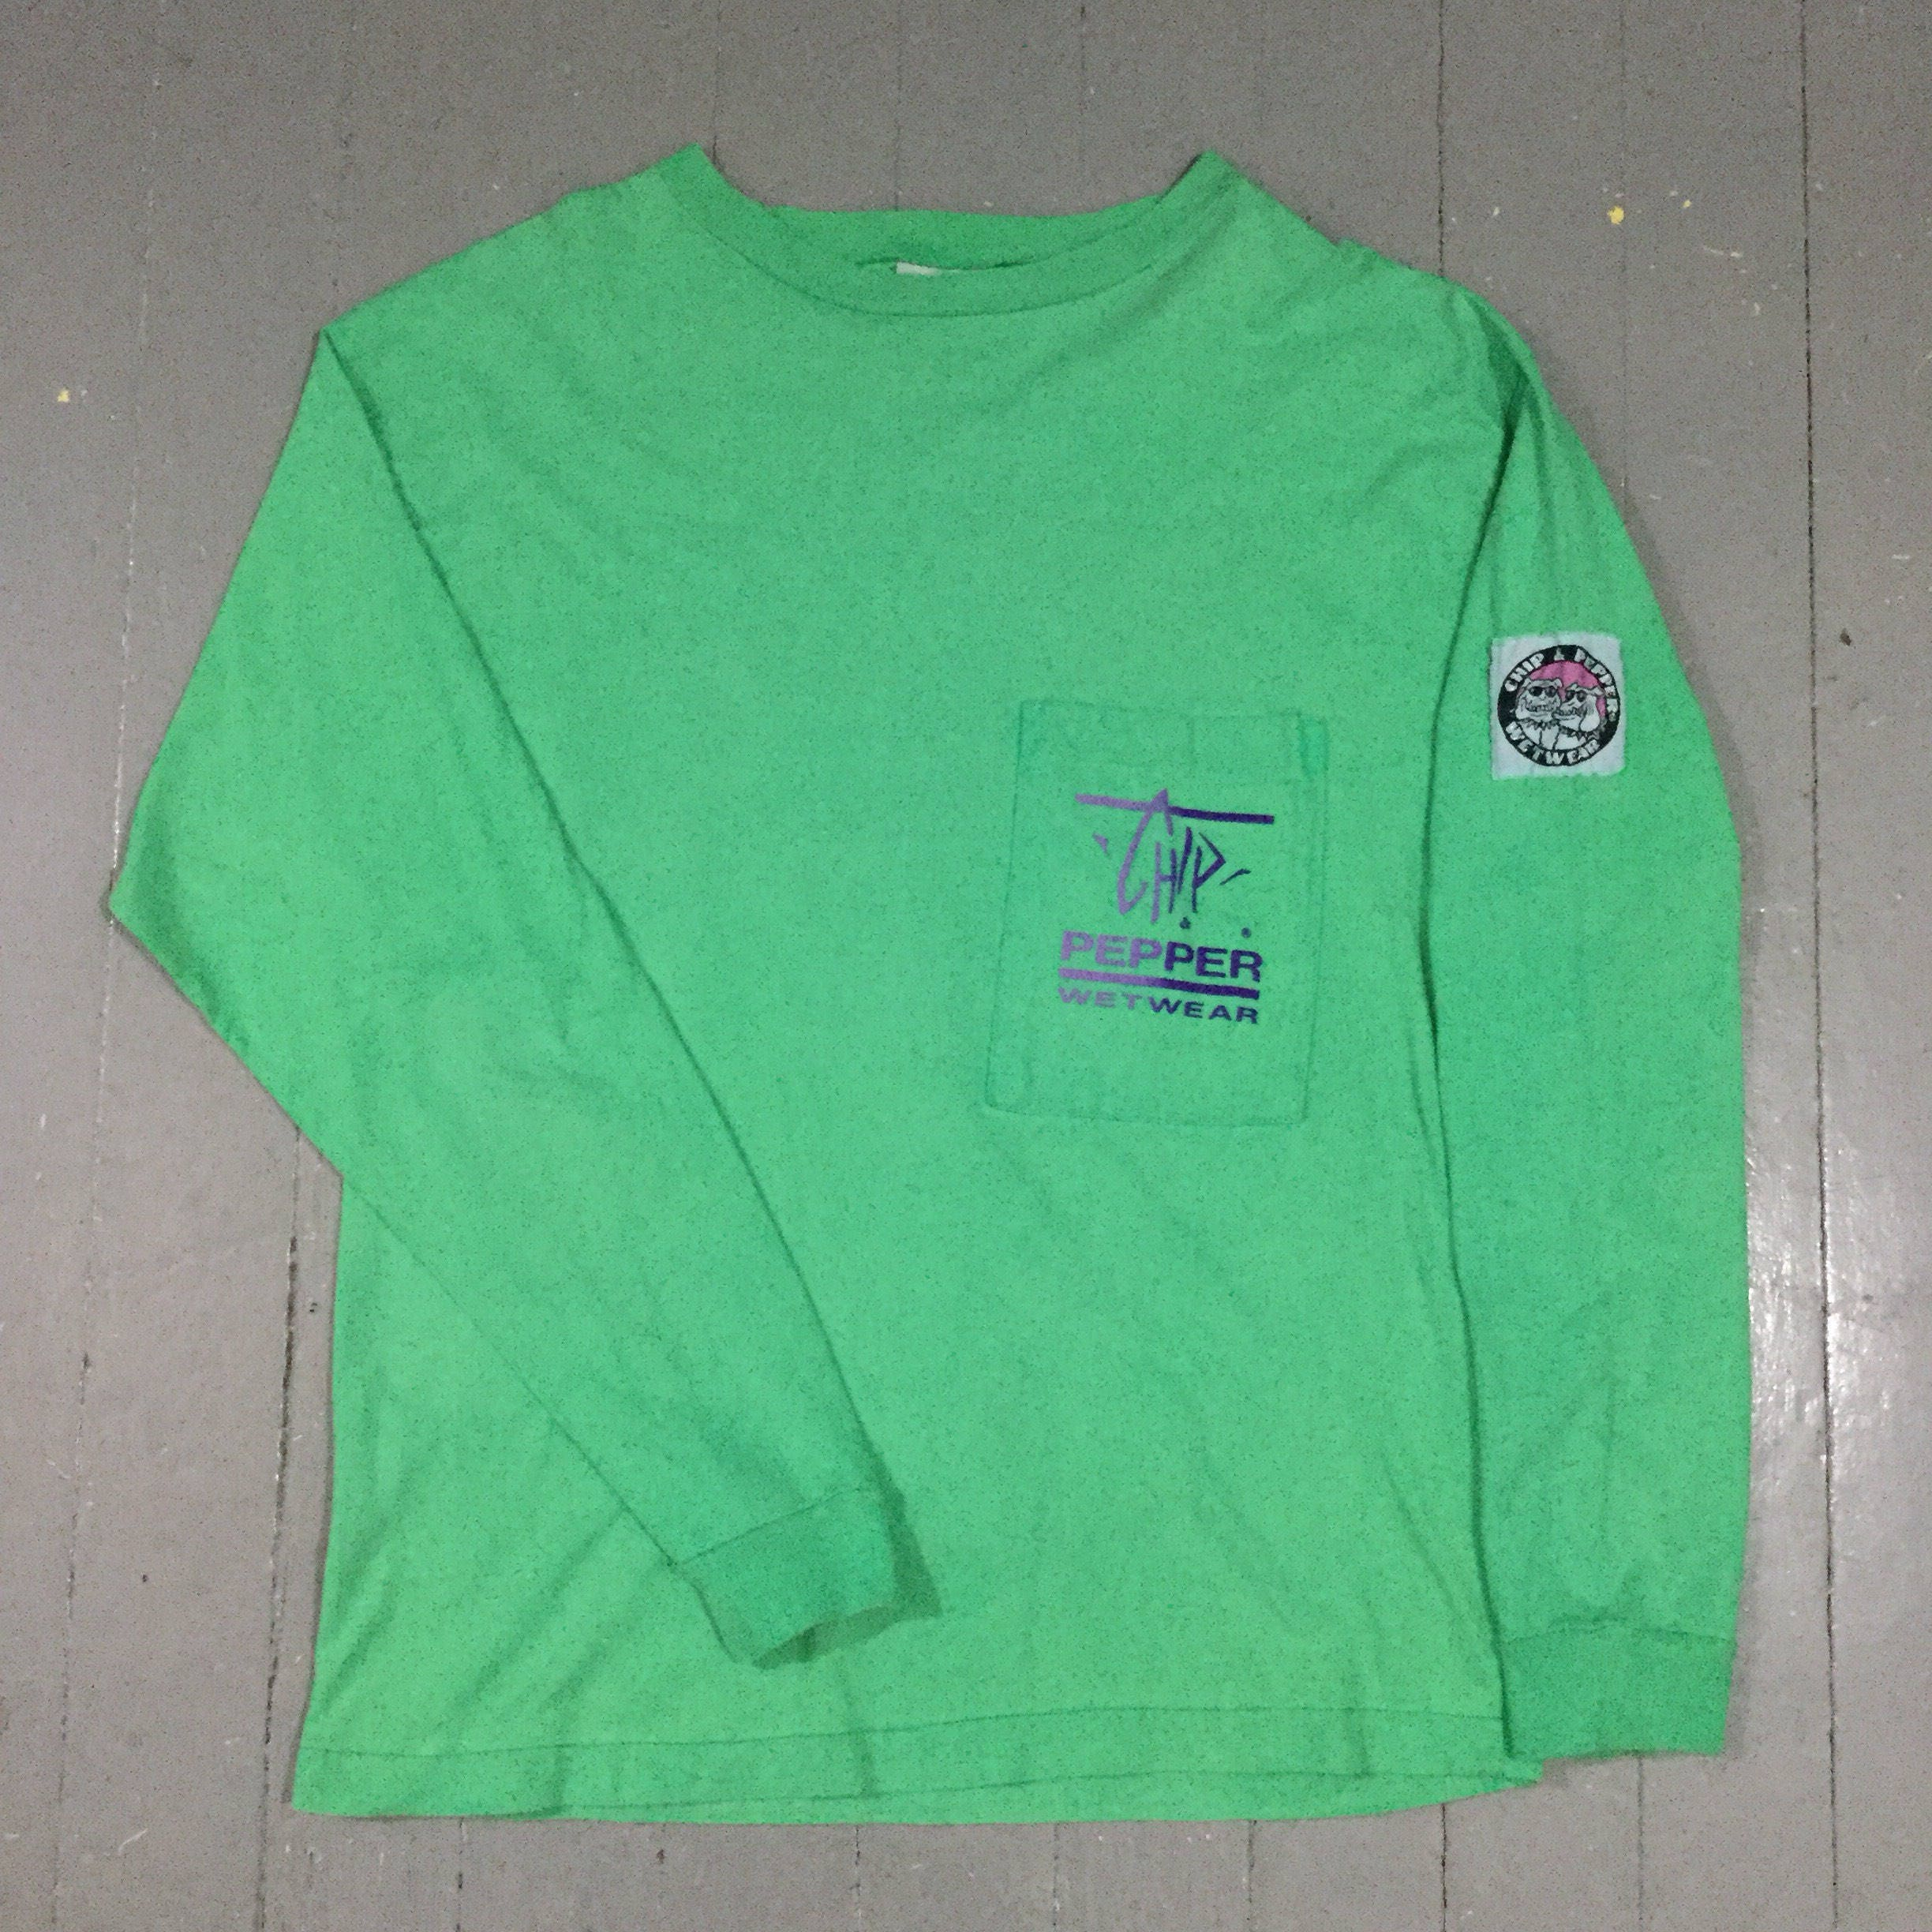 Vtg 1987 chip and pepper wet wear long sleeve shirt for Chip and pepper t shirts